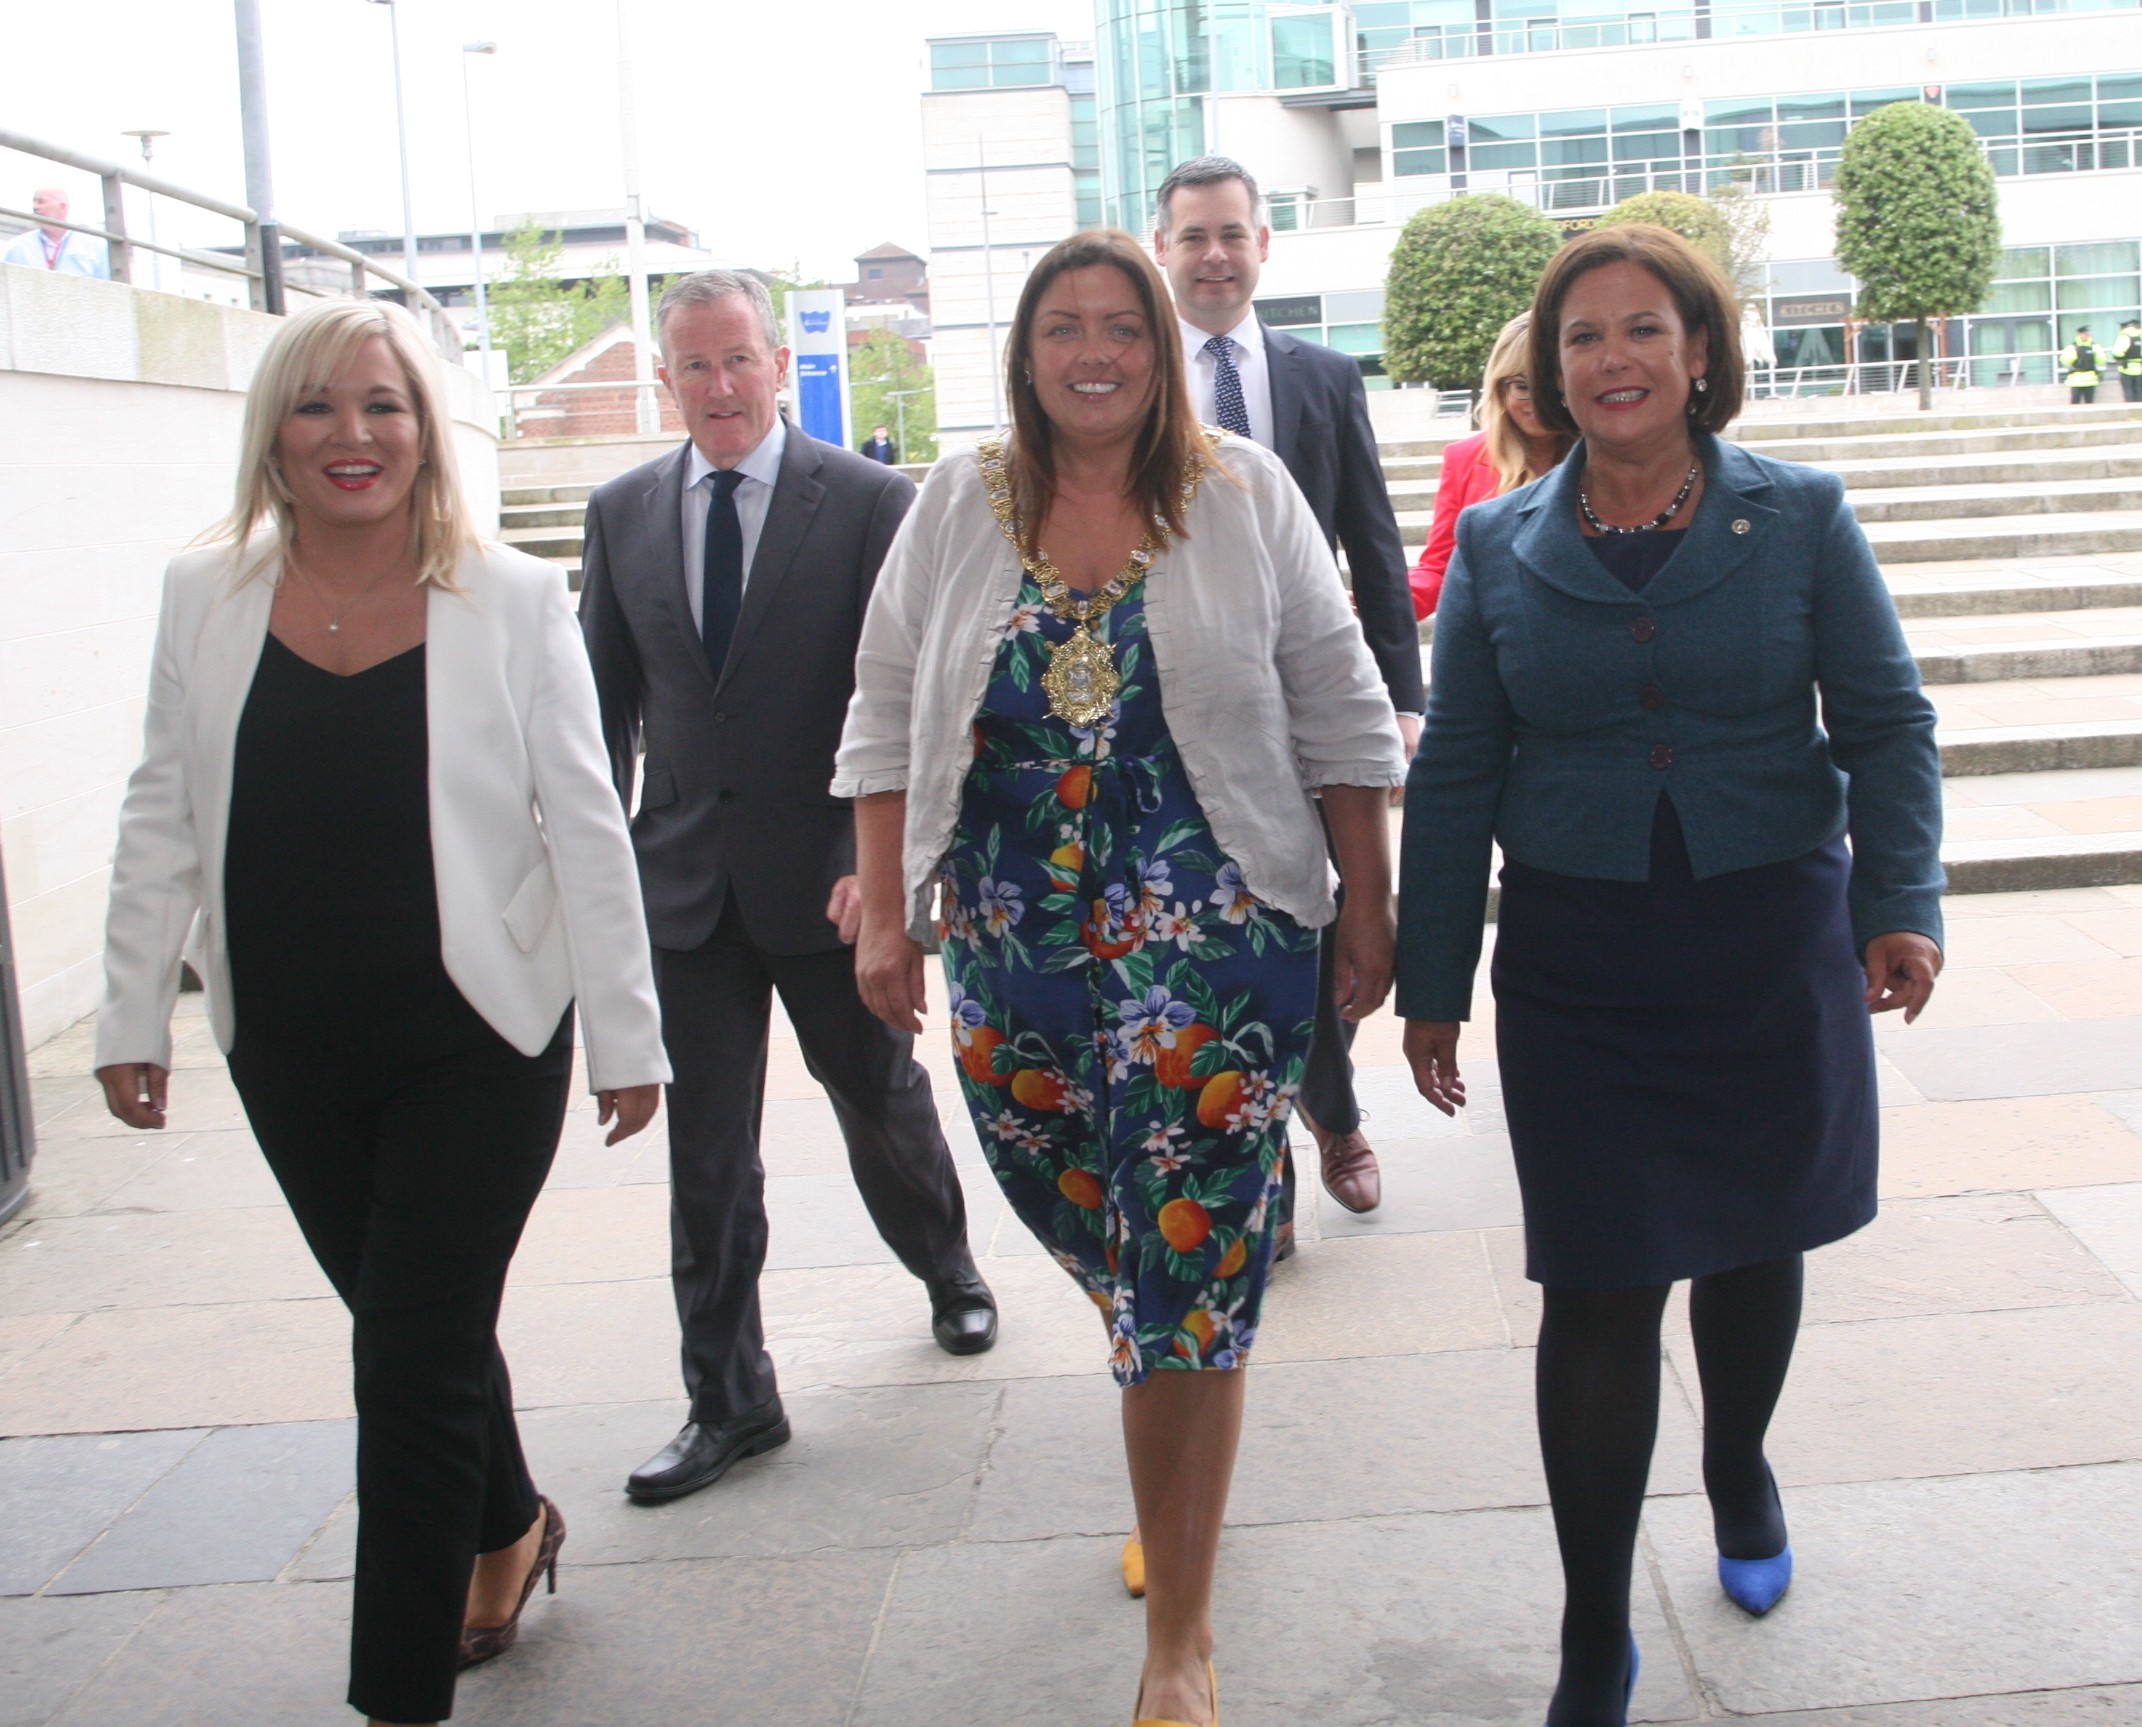 Sinn Féin leaders arriving at Belfast's Waterfront Hall.